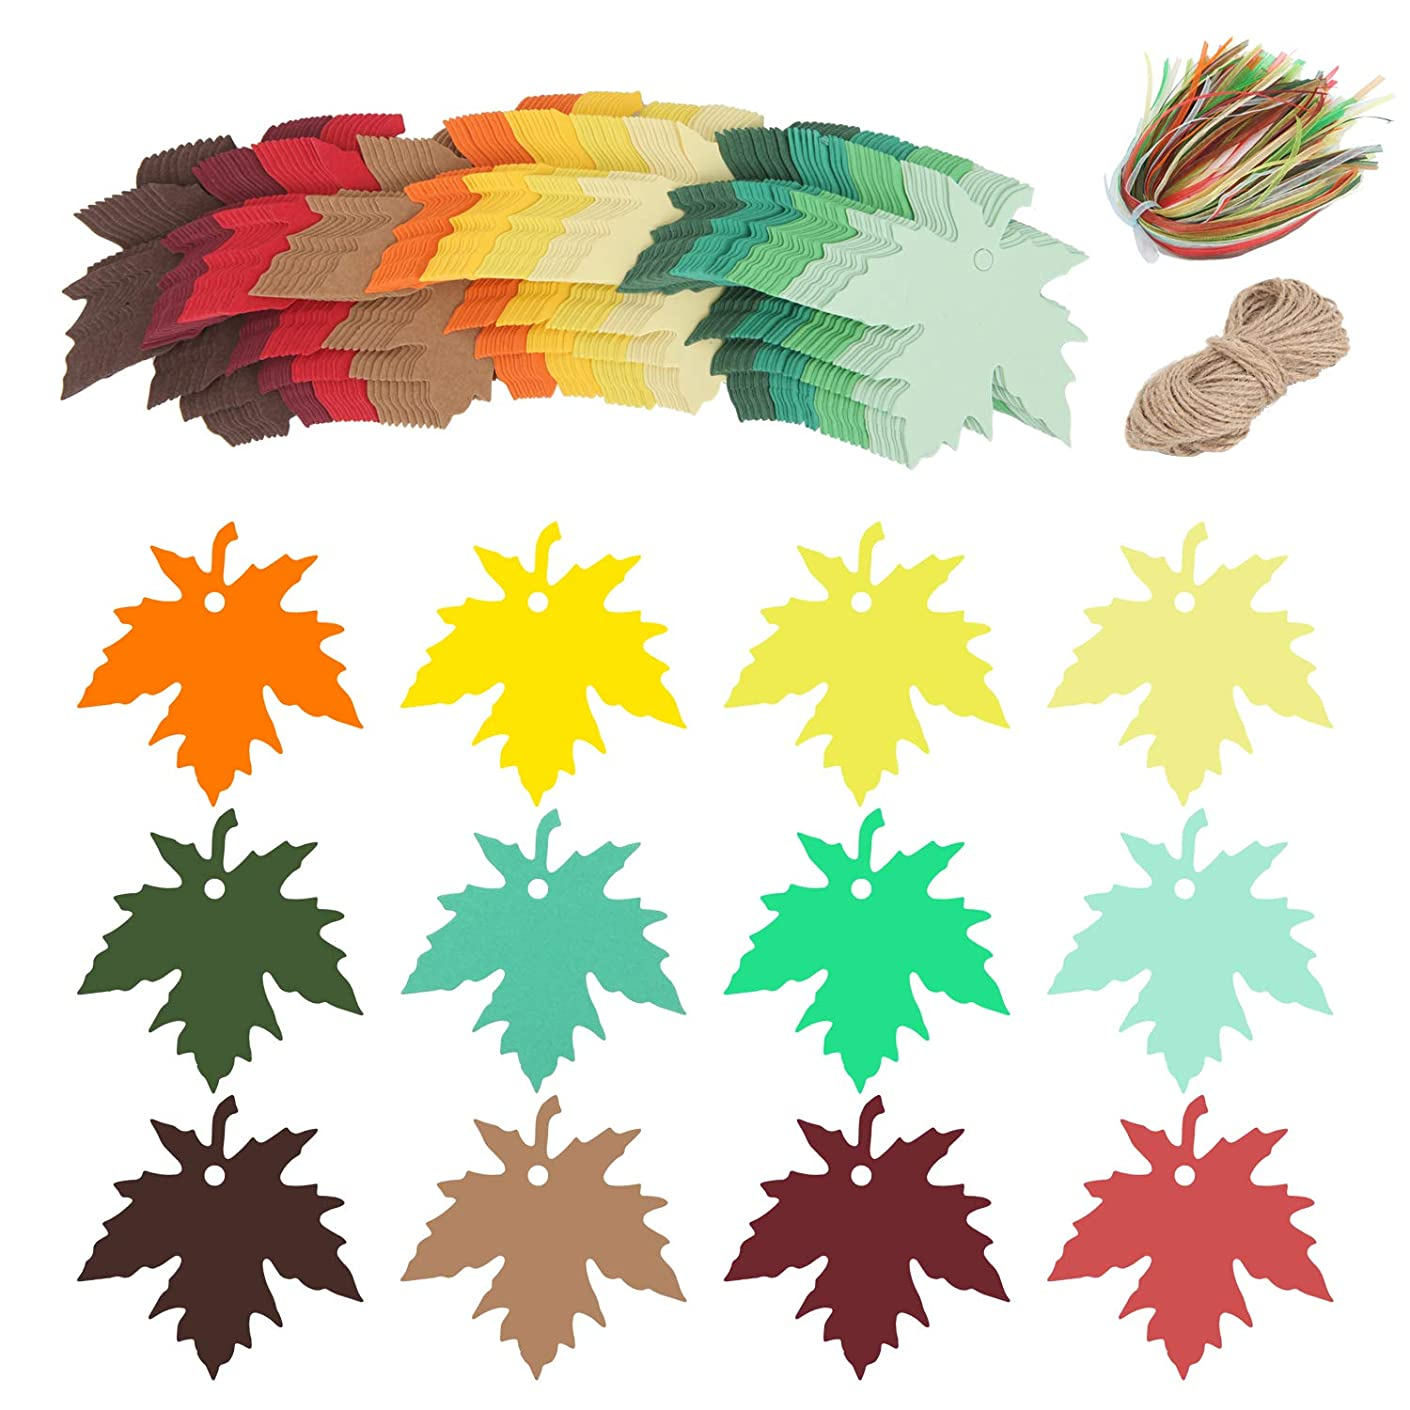 Soonow Maple Leaves Paper Gifts Tags - 120 Pcs Favor Hang Tags Name Tags with Strings for Baby Show Birthday Party Wedding Favors Tags, Ribbons and 65 Feet Jute Twine Included